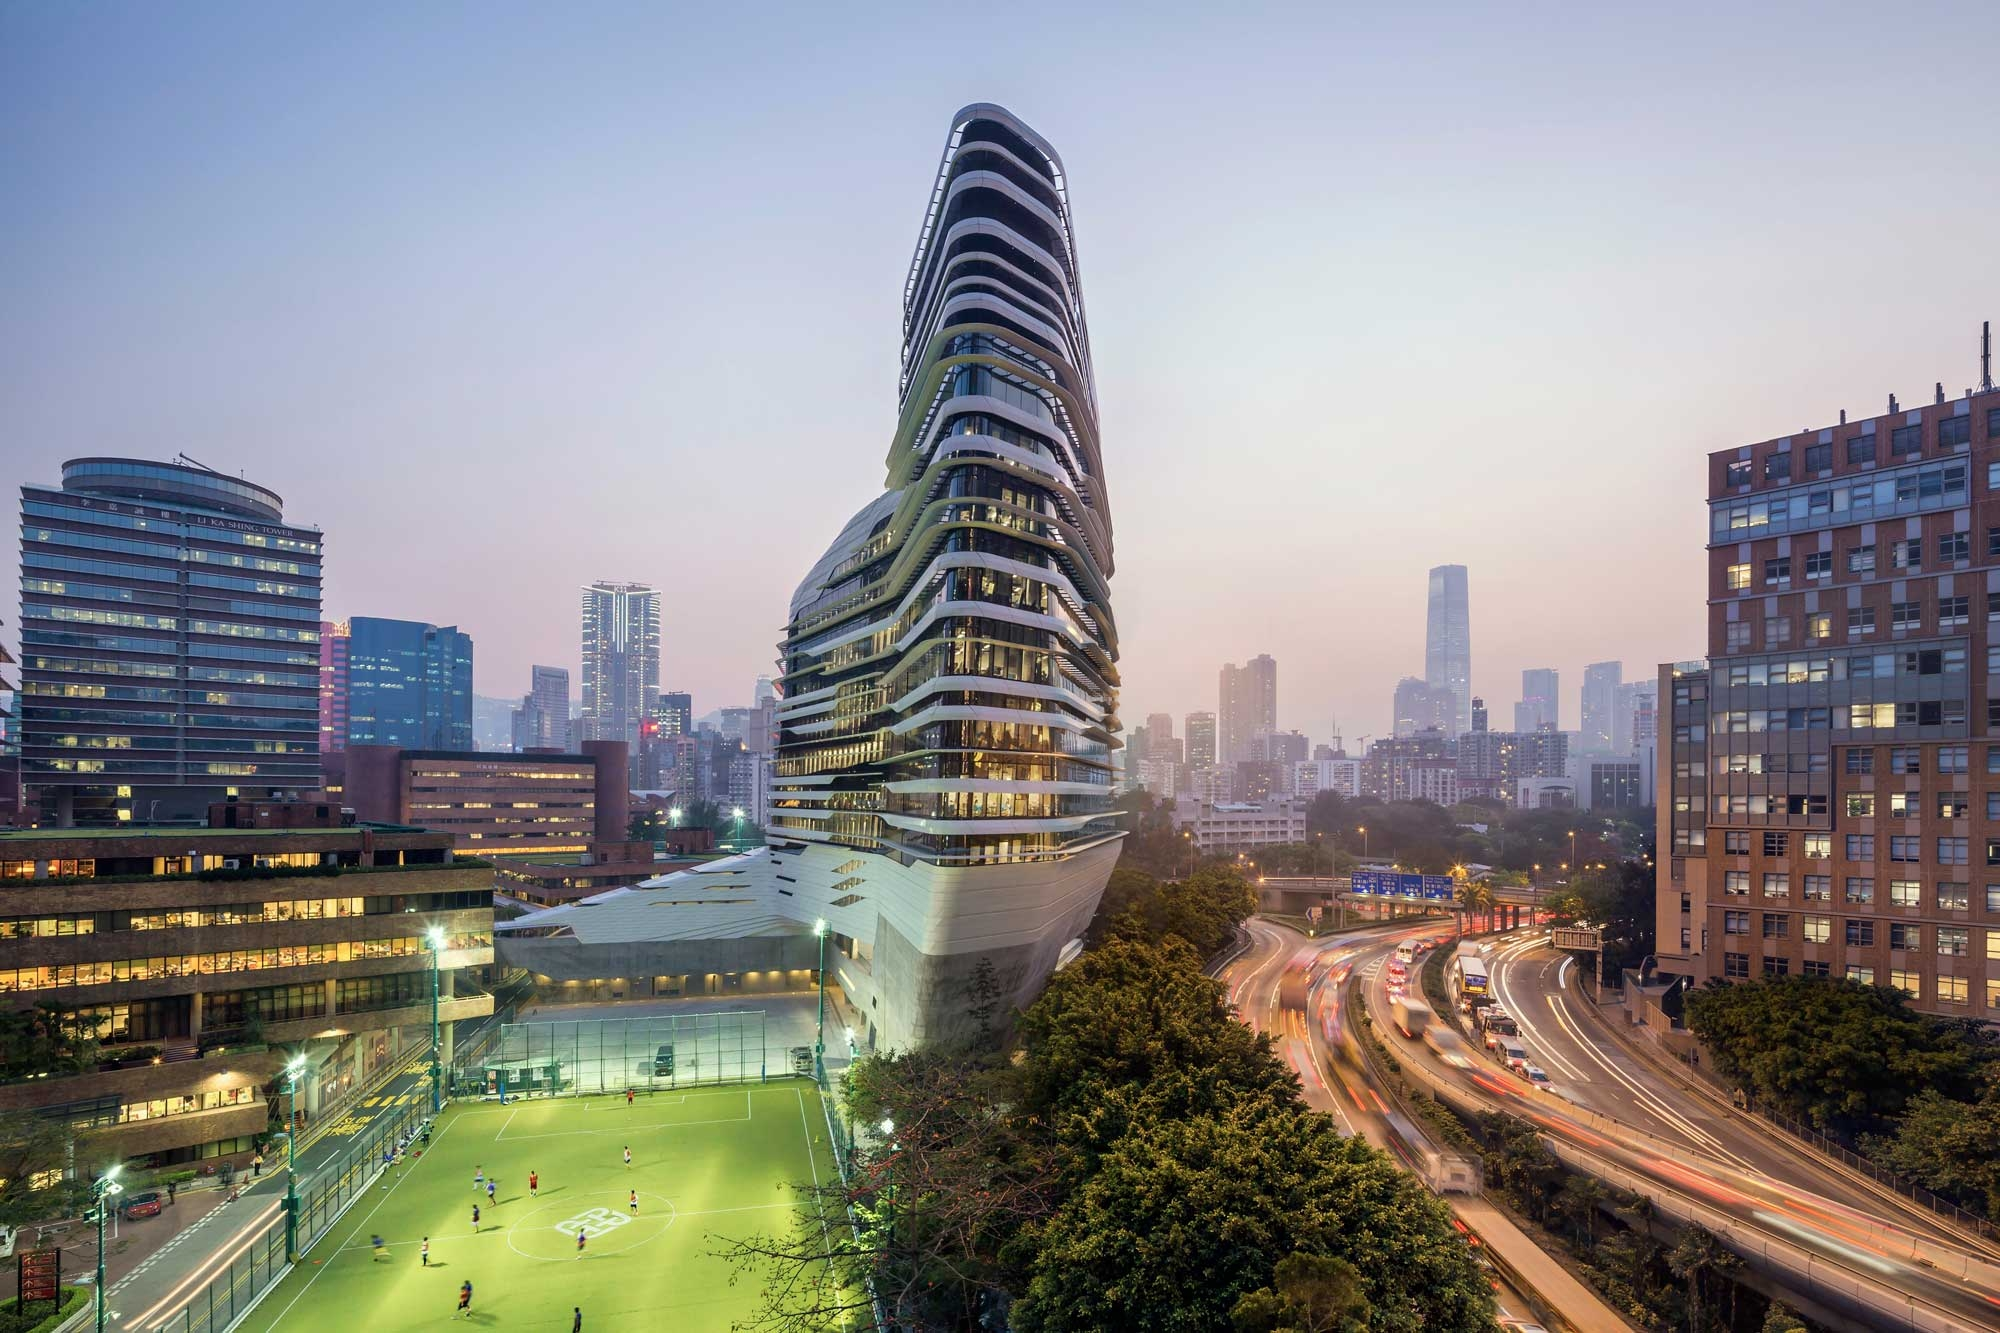 17 Jockey Club Innovation Tower at Hong Kong Polytechnic University 2000x1333 c